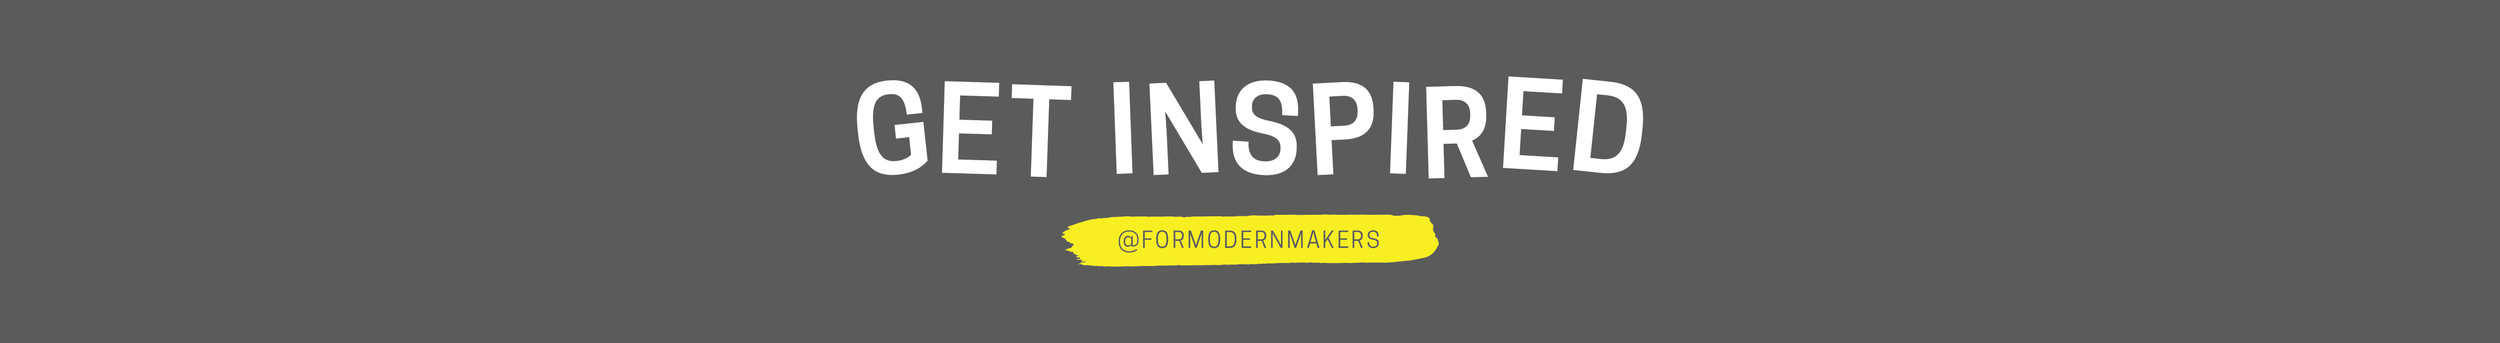 Get-inspired-01-01-01.png